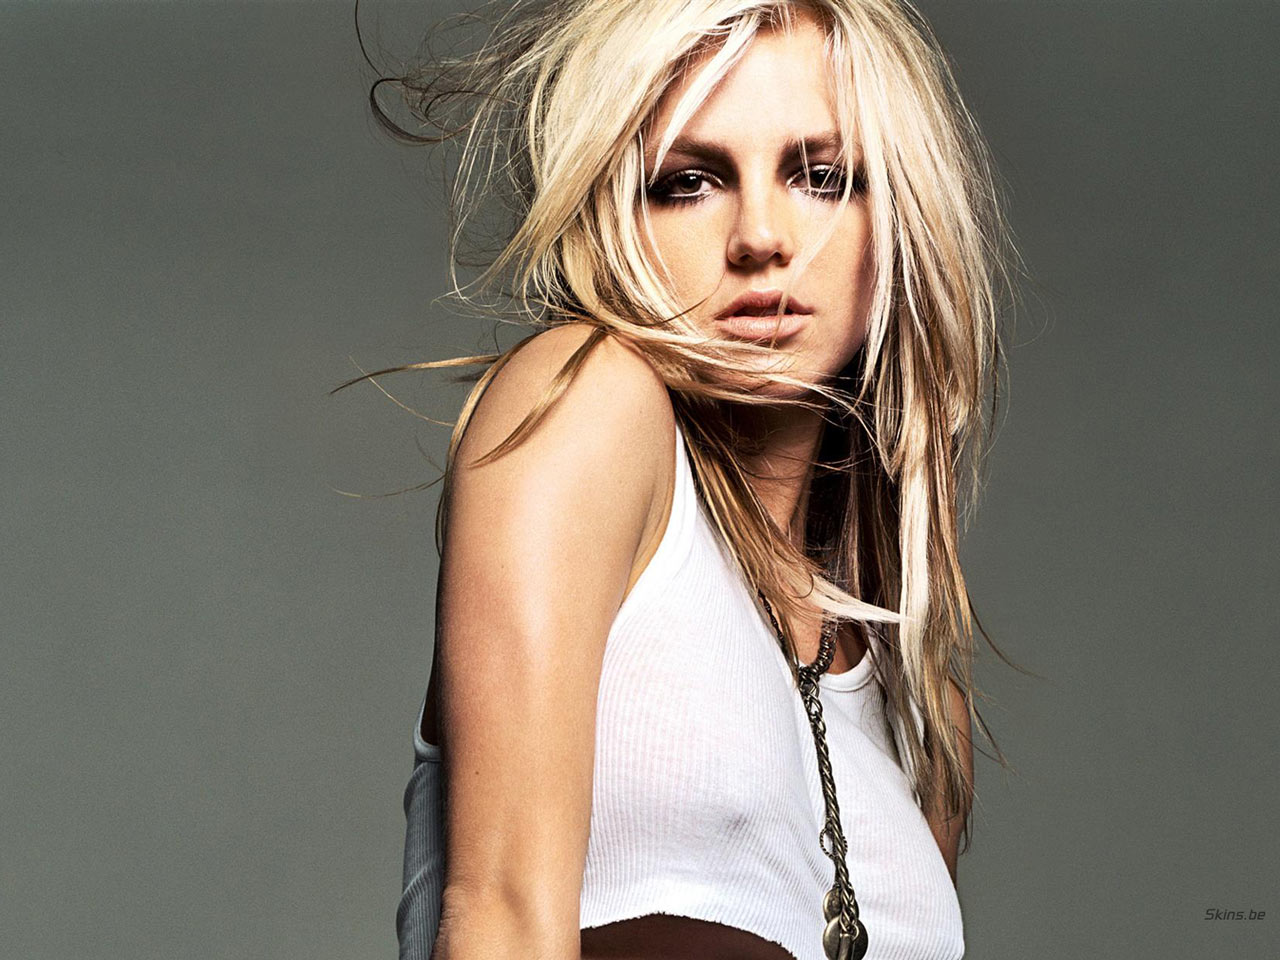 Photoshoot Britney Spears Bold Pics Sexy Hot images in Seducing Poses Showing Boobs